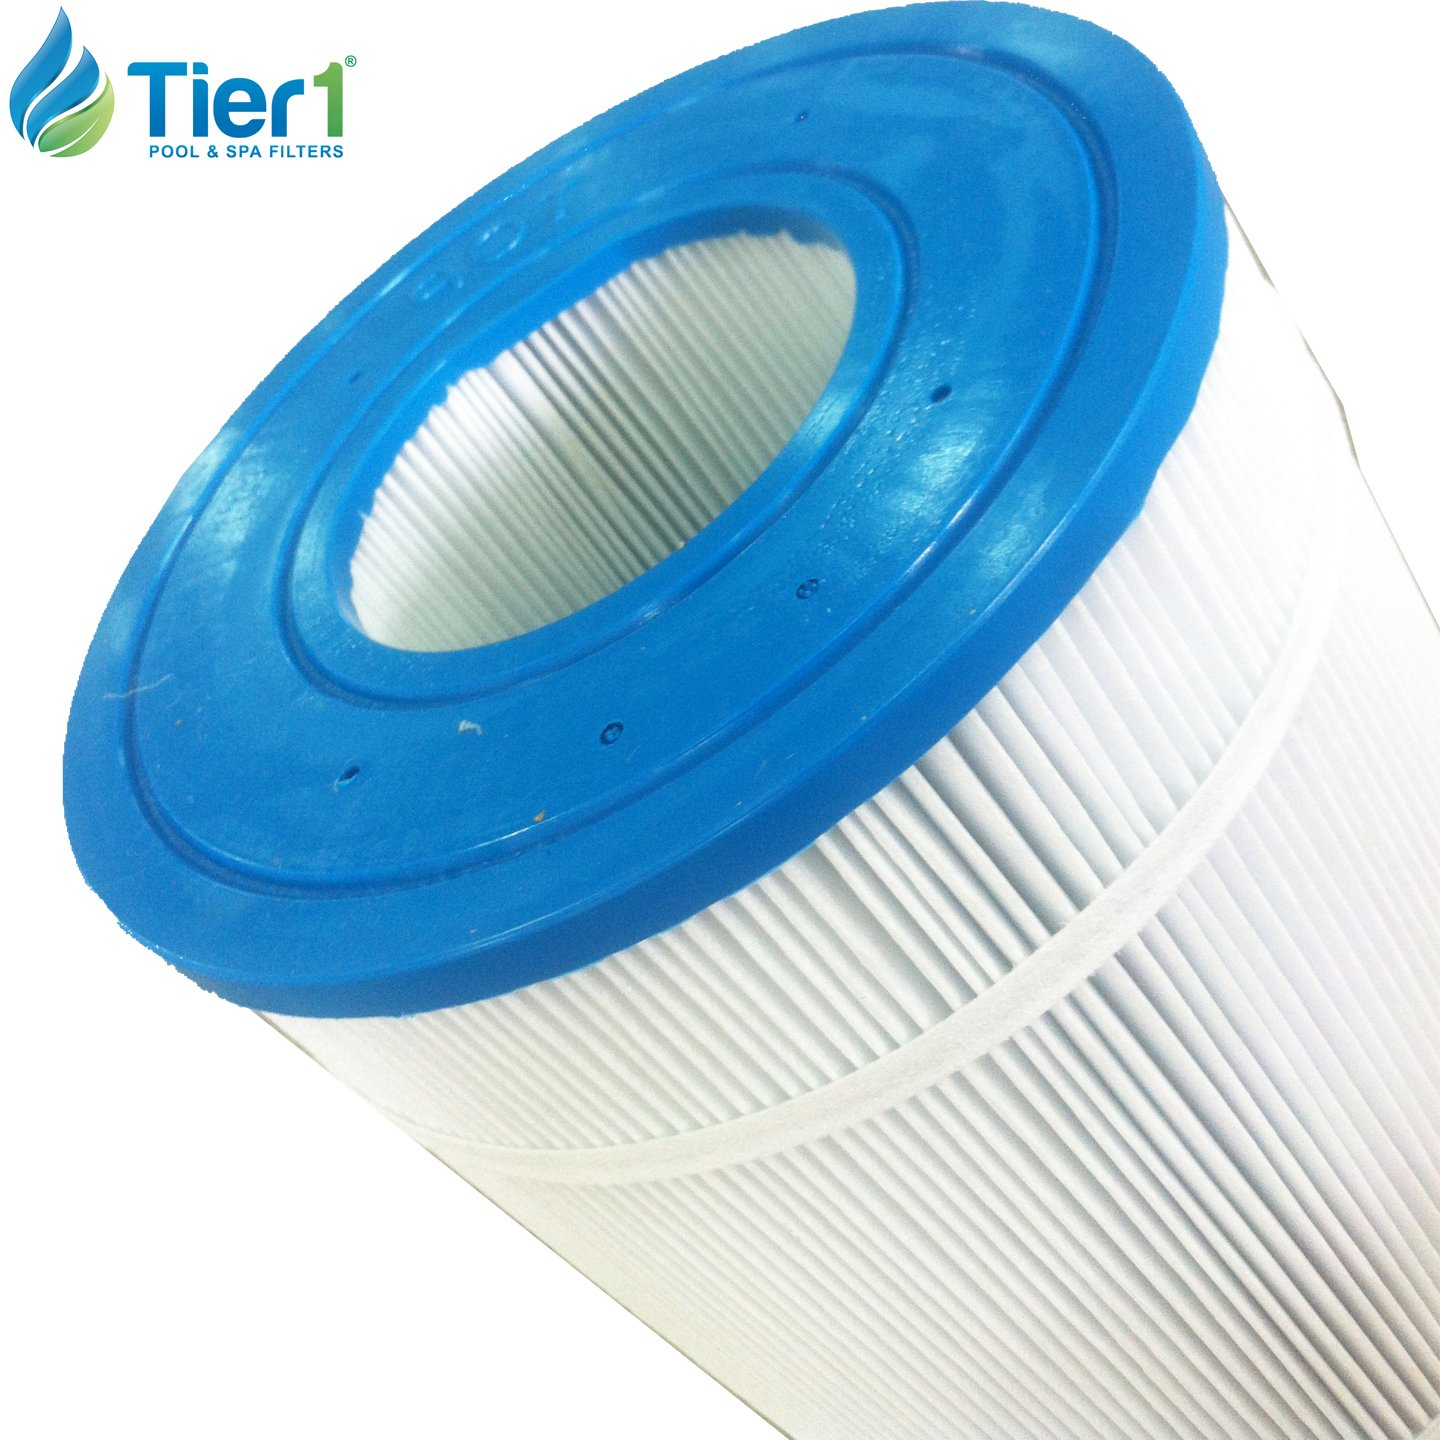 Filbur FC-2540 Unicel UHD-SR70 Pool and Spa Filter Tier1 Replacement for Sta Rite PTM70 T-70TX Pleatco PSR70-4